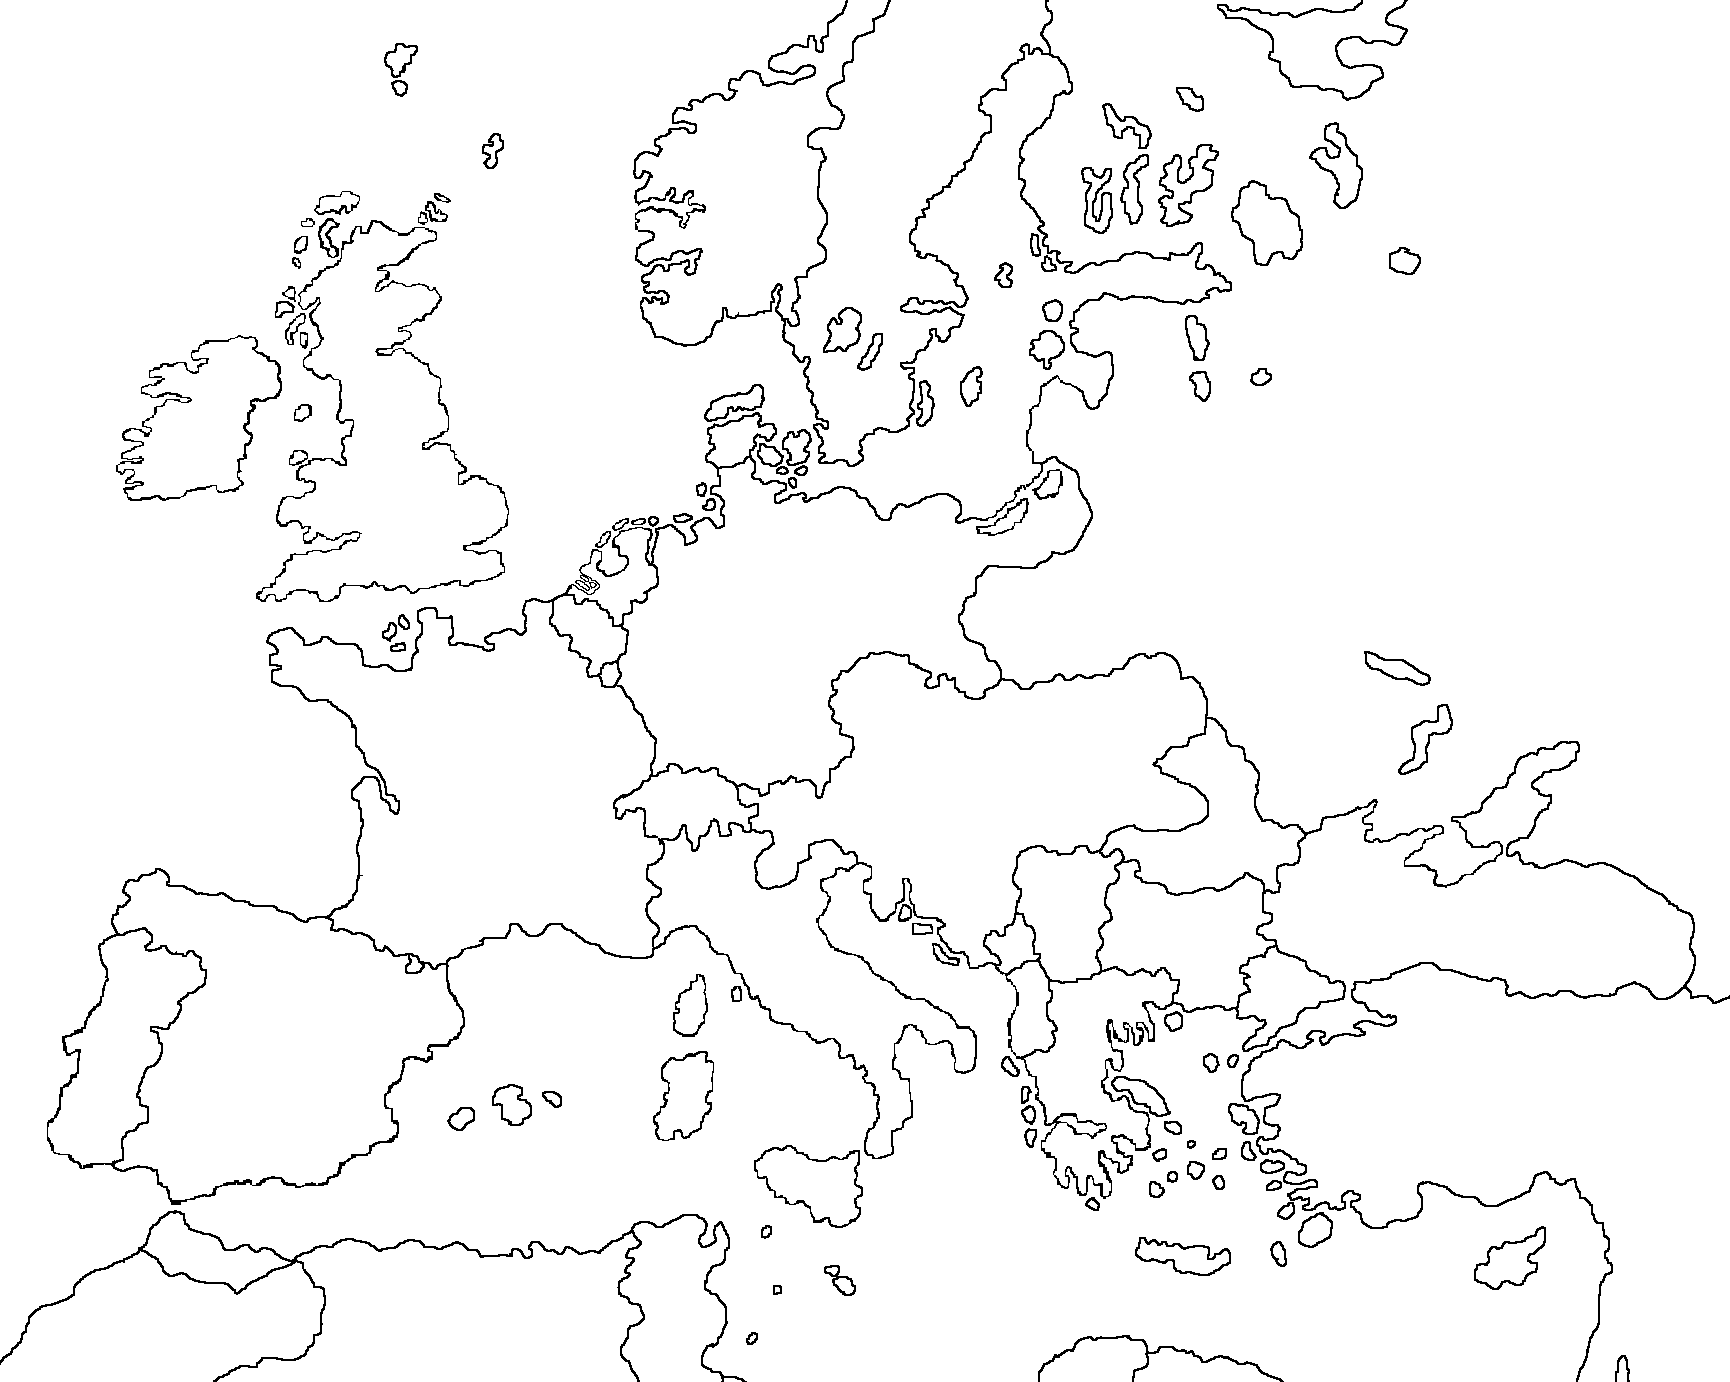 Blank Maps Of Europe Image   Blank map of Europe 1914 by Eric4e.png  Blank Maps Of Europe